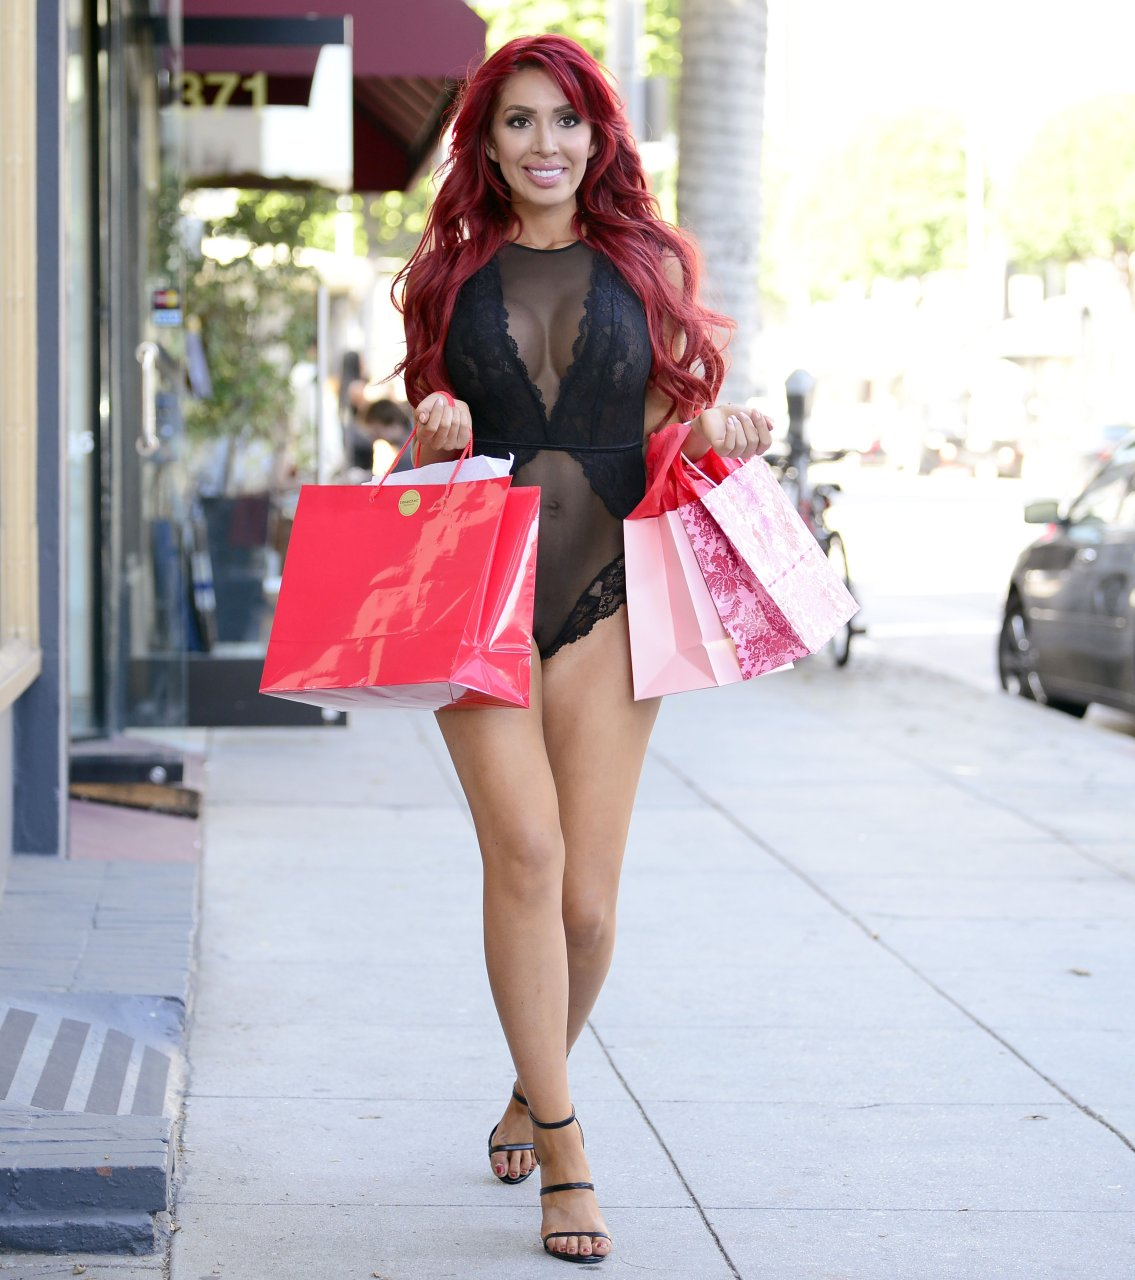 Farrah-Abraham-See-Through-36-The-Fappening-Blog.jpg